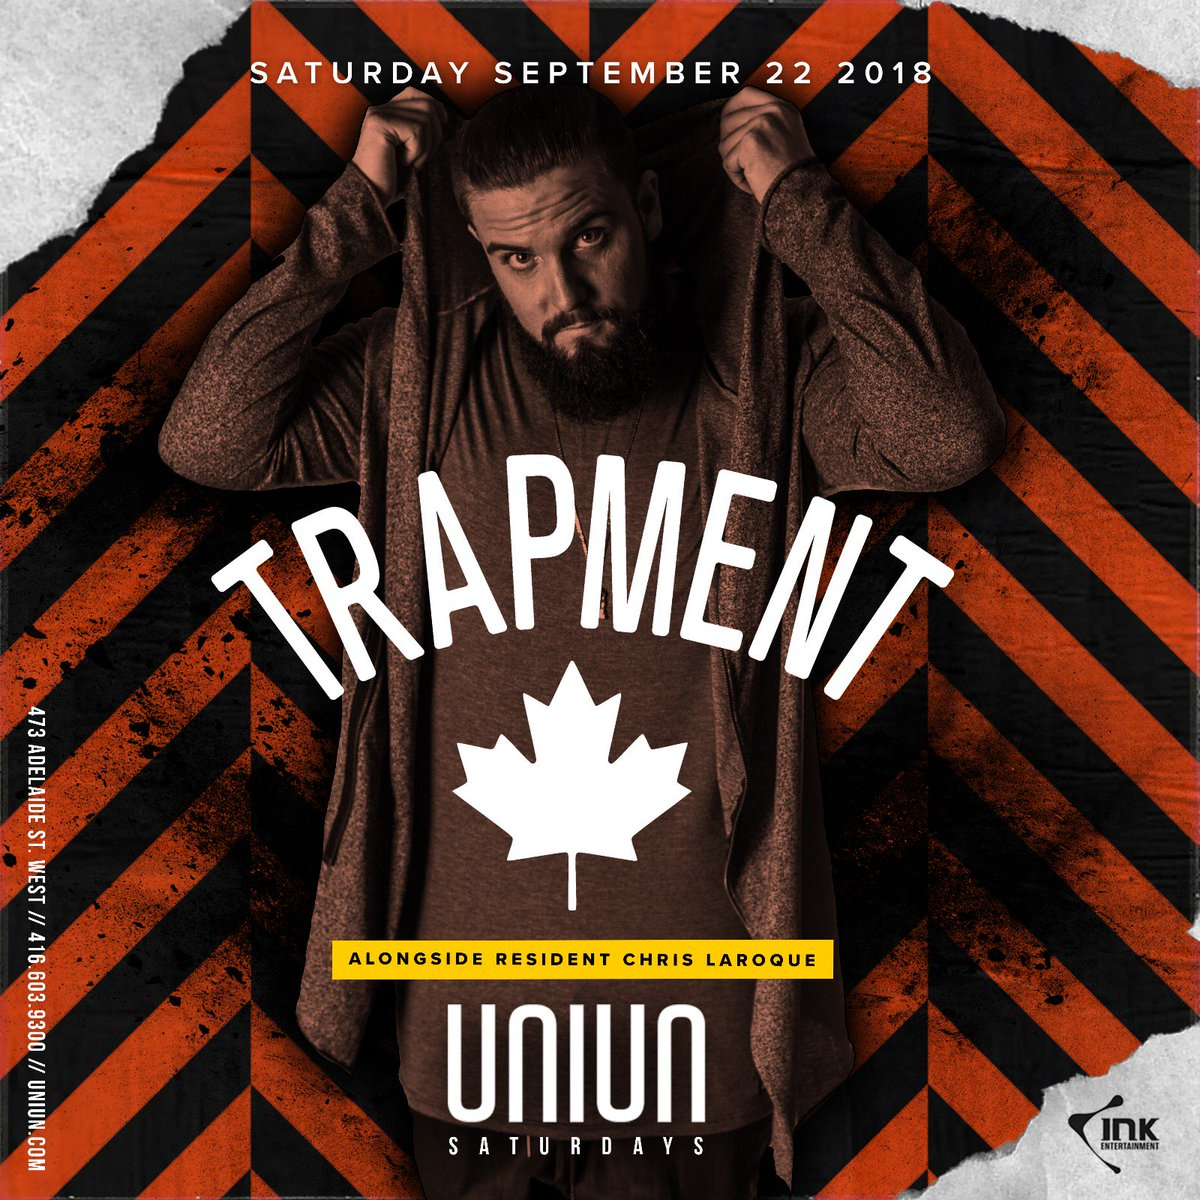 test Twitter Media - DJ @trapment is throwing a party tonight at Uniun! Need GL? Smash the link below!   GUESTLIST → https://t.co/UpVhHUSCPl BOTTLESERVICE → https://t.co/eIzlRFv7wi 🎉 https://t.co/10SnSqnxKY